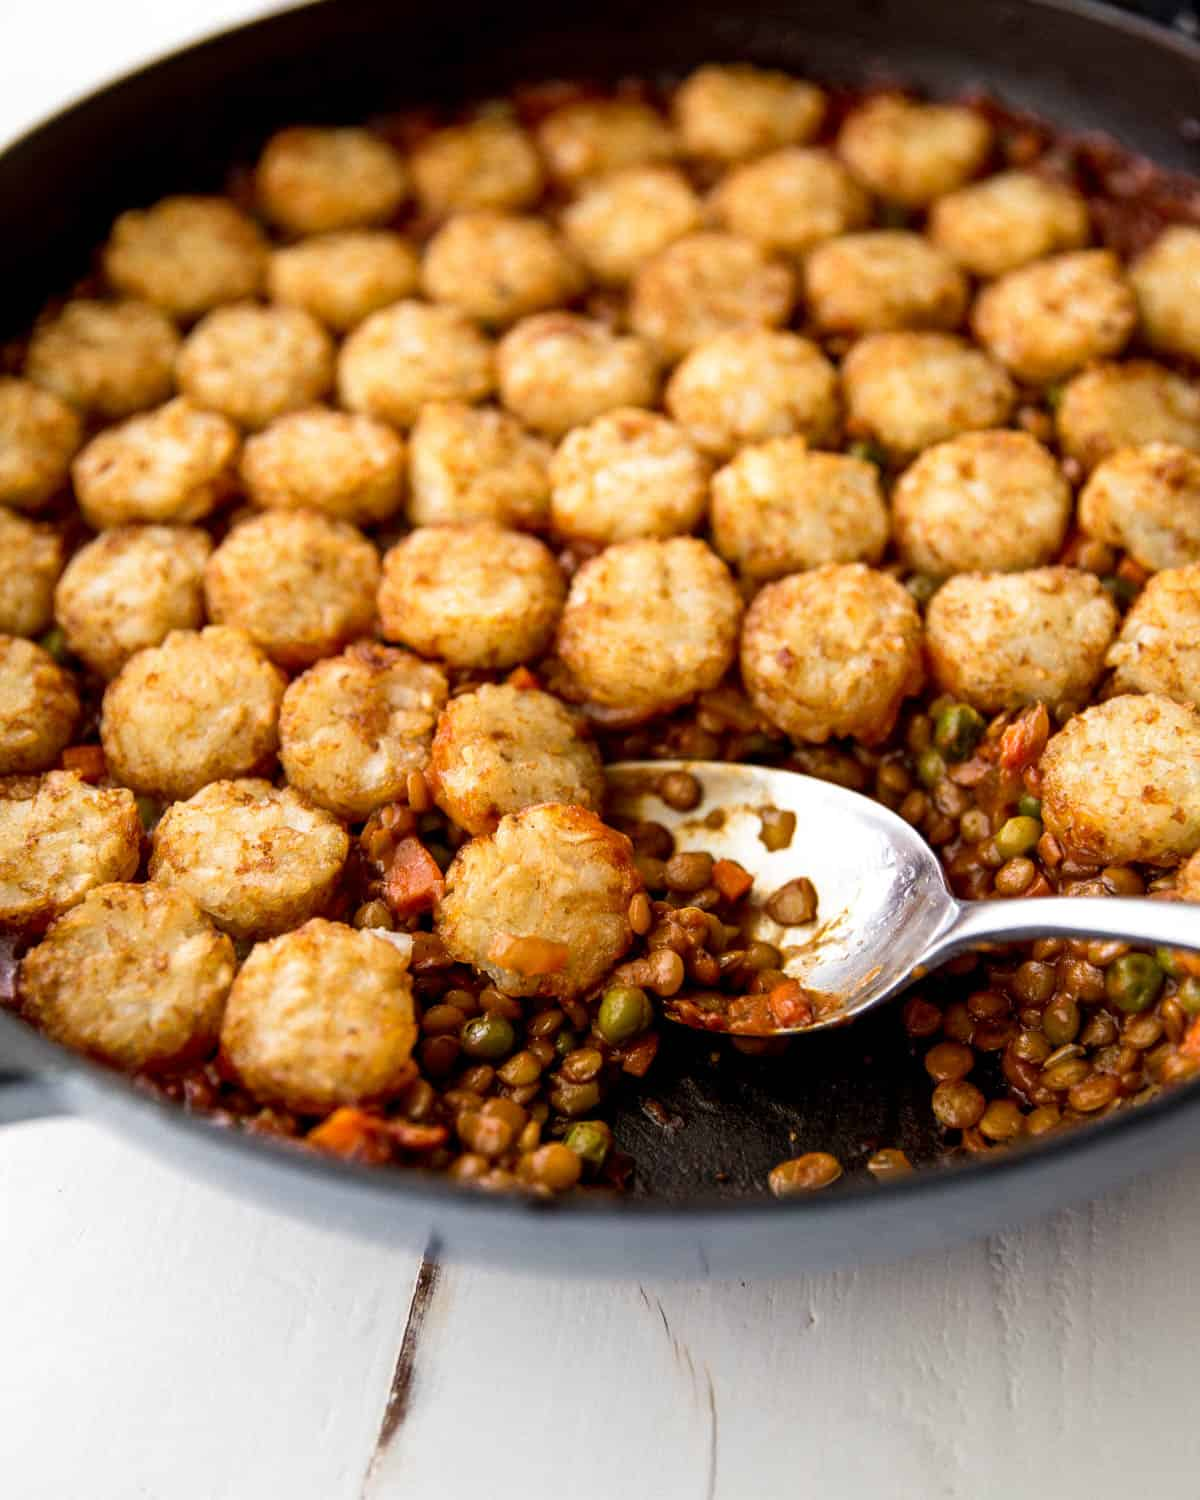 a spoonful of tater tot casserole